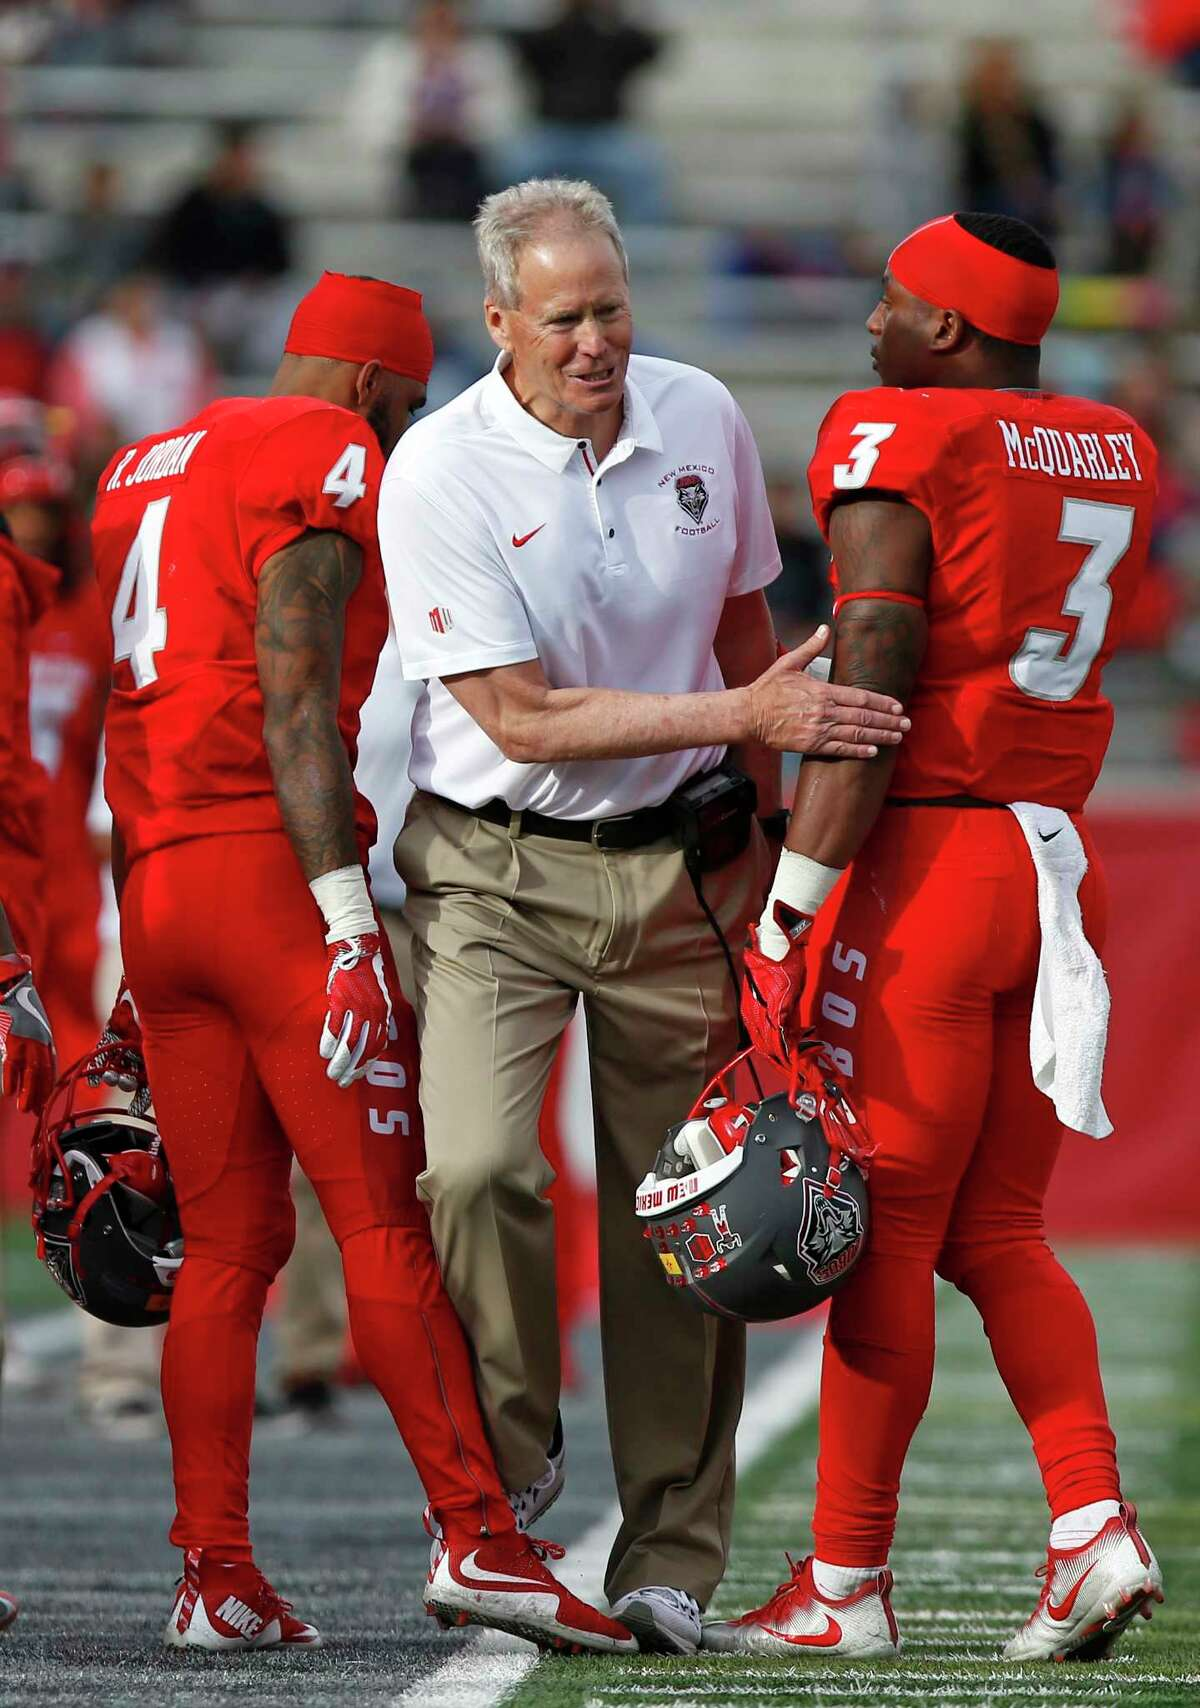 New Mexico coach Bob Davie served as a linebackers coach and defensive coordinator at A&M in the prime of the Aggies' vaunted